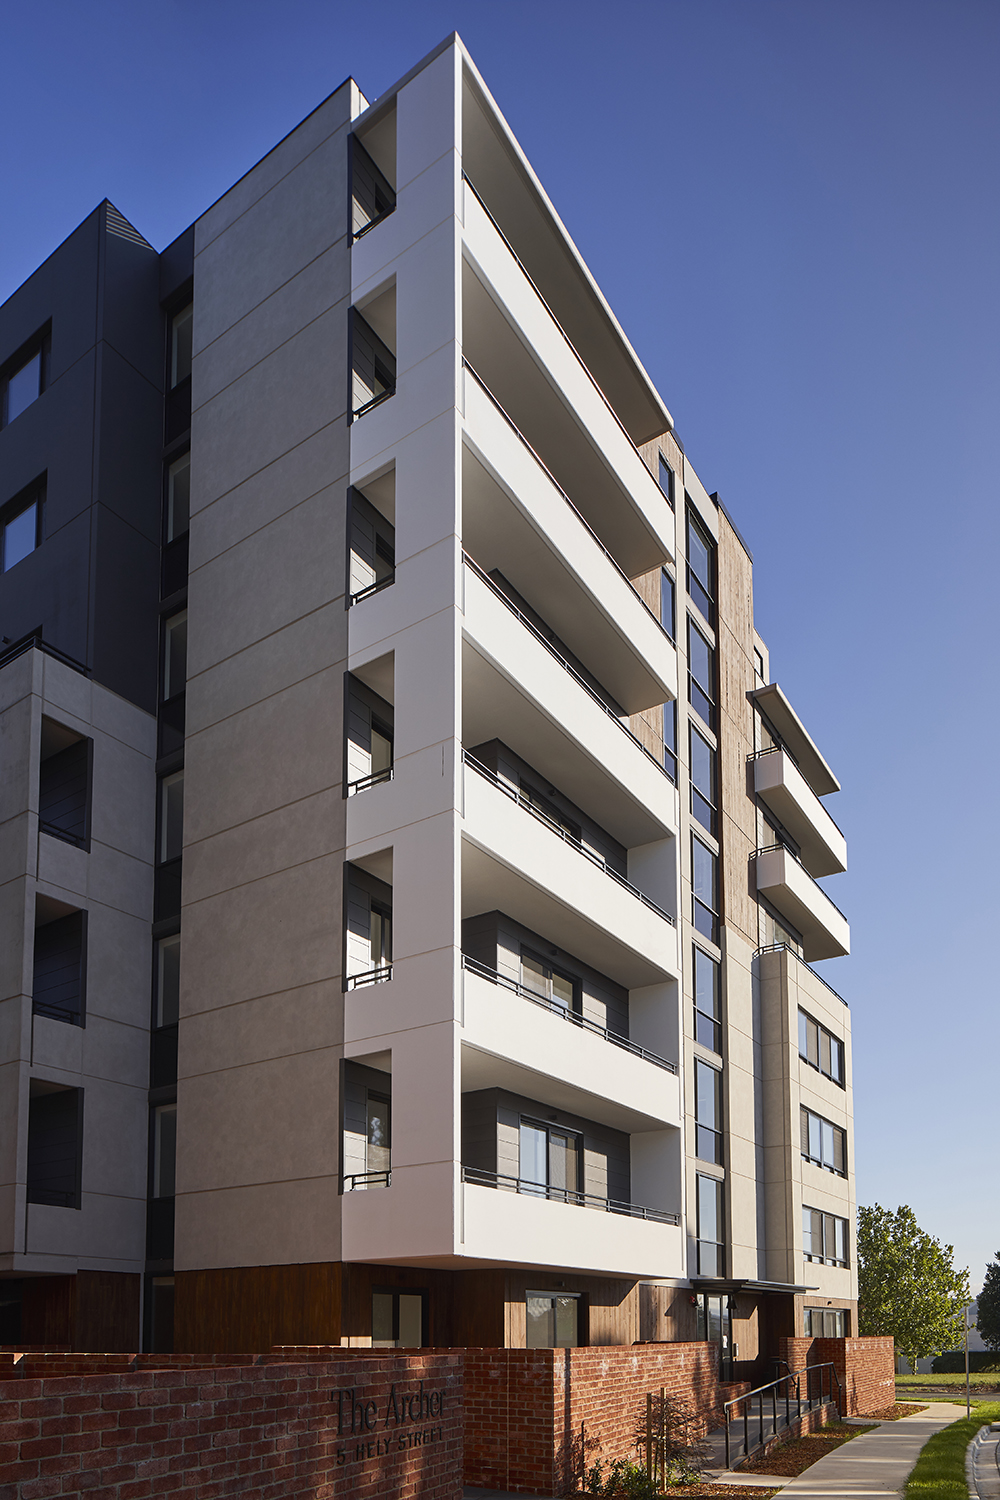 exterior architectural photography of new development in canberra by Canberra photographer